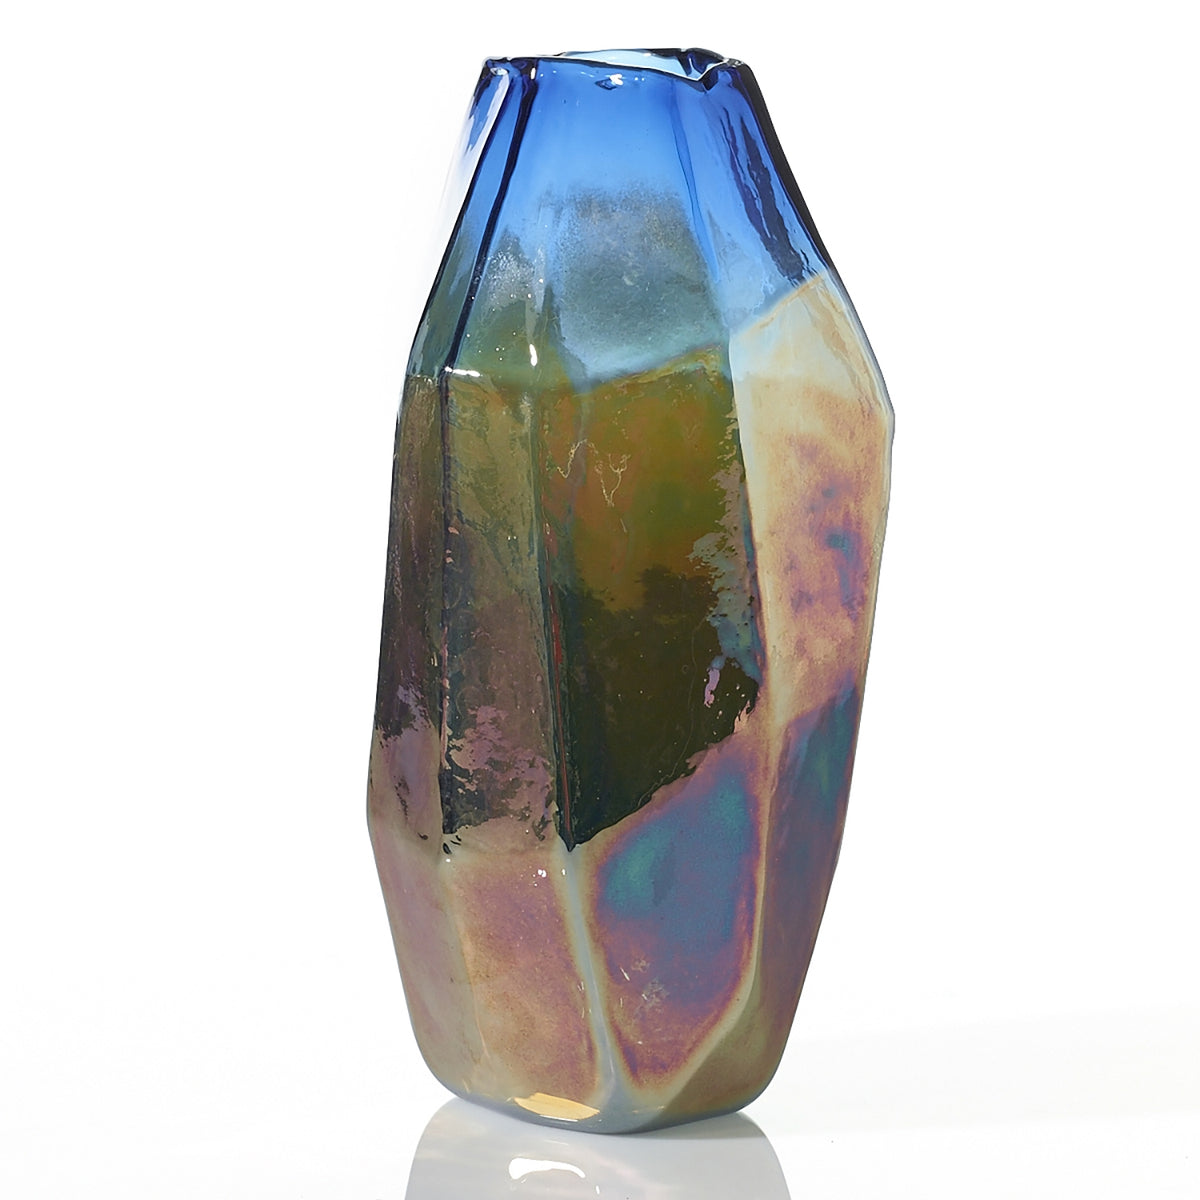 Studio Vase - Colored Glass - 4.5 x 12